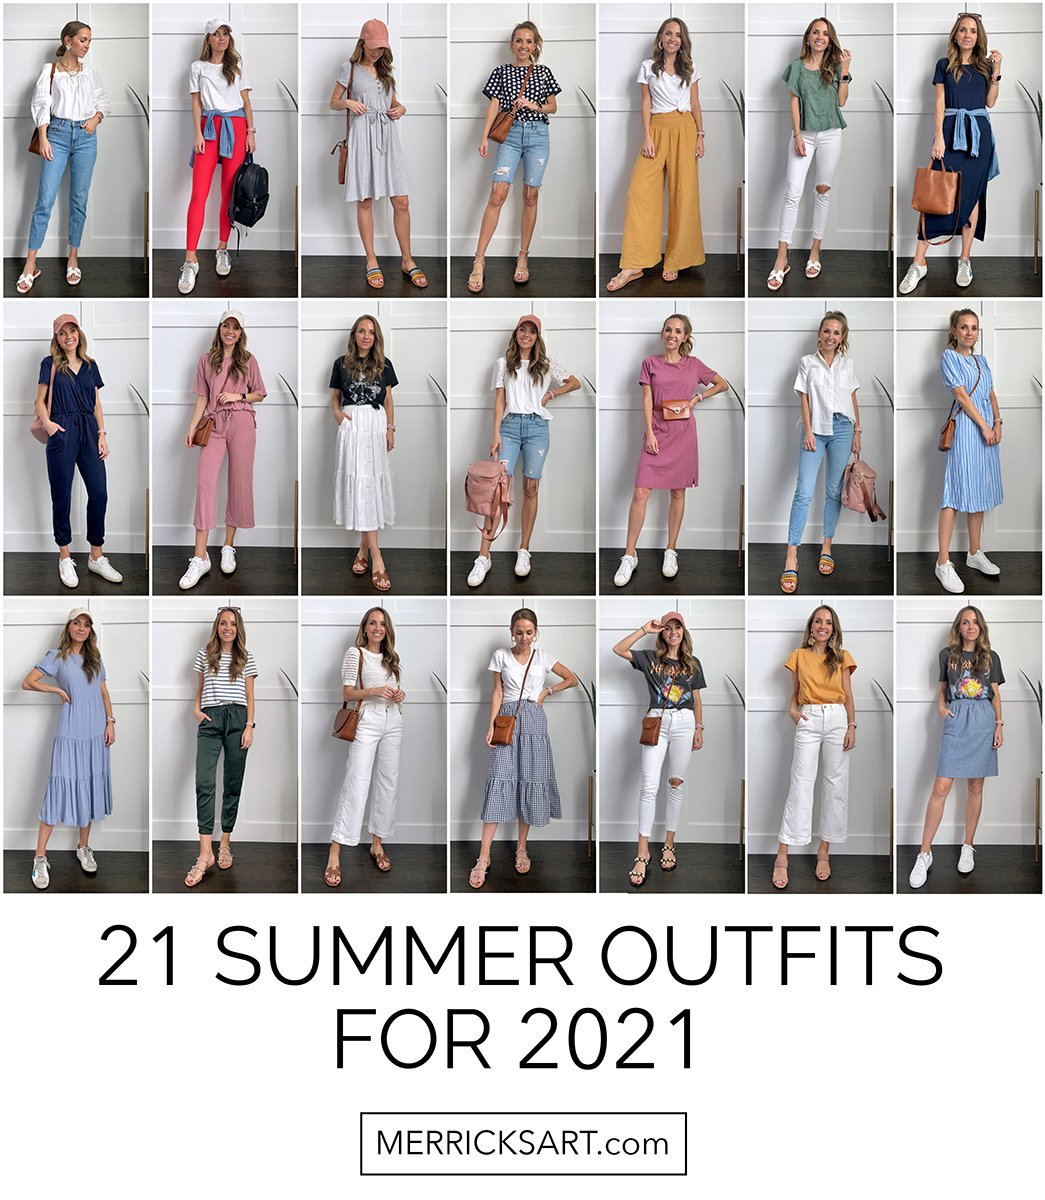 summer outfits for 2021